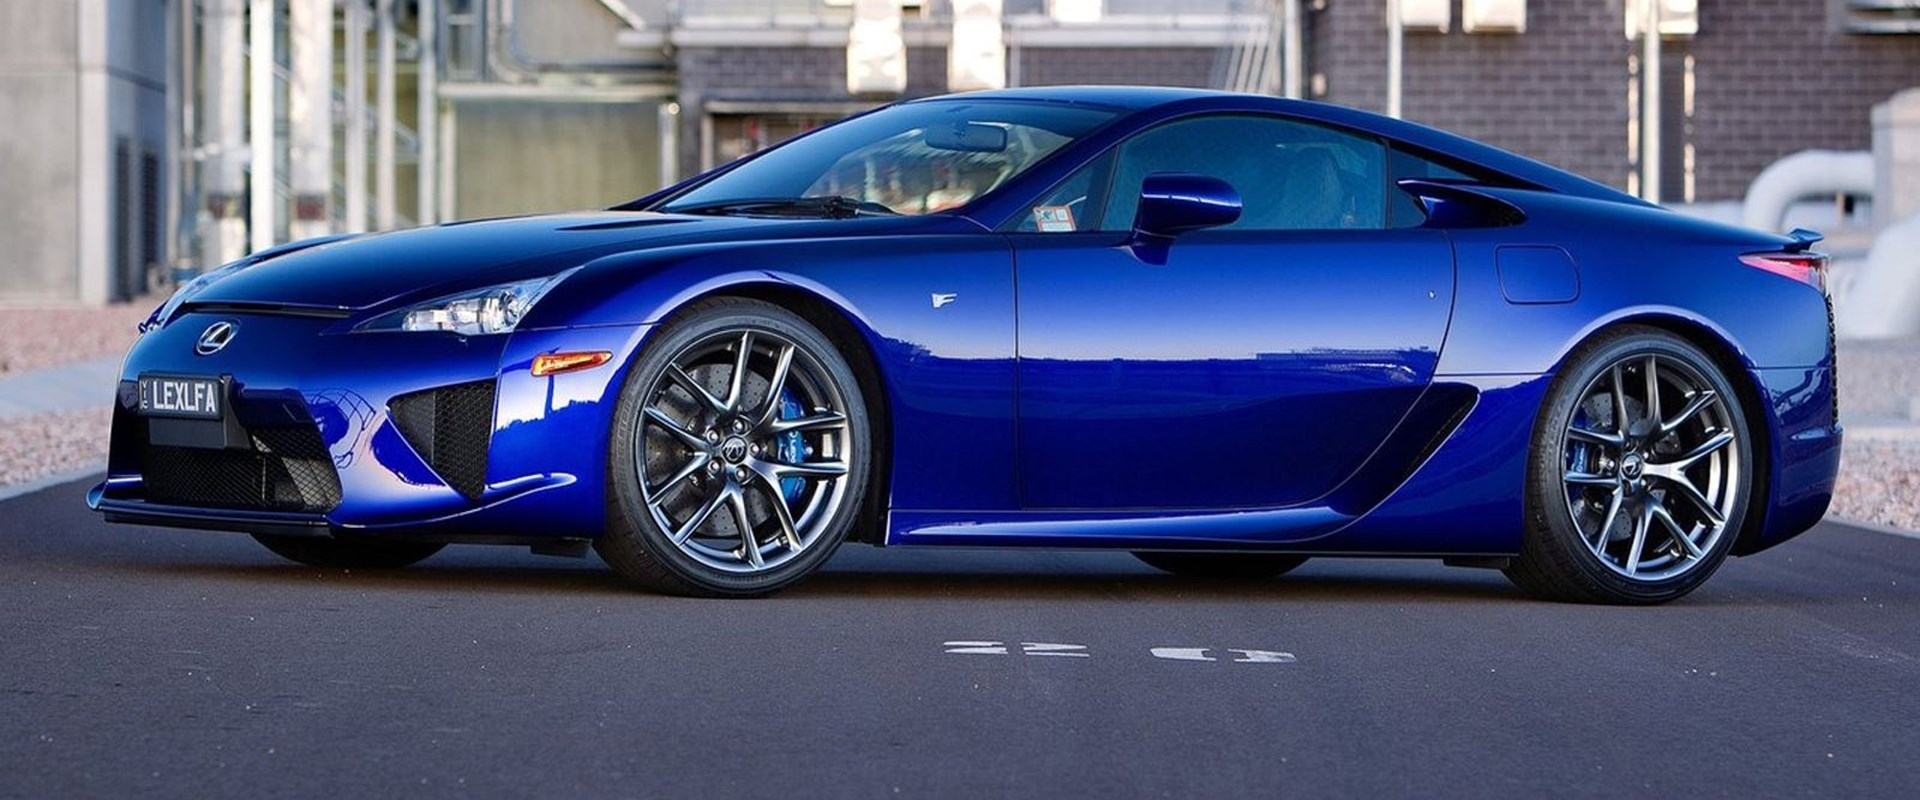 Lexus LFA Successor Is A Very Real Possibility - CarBuzz